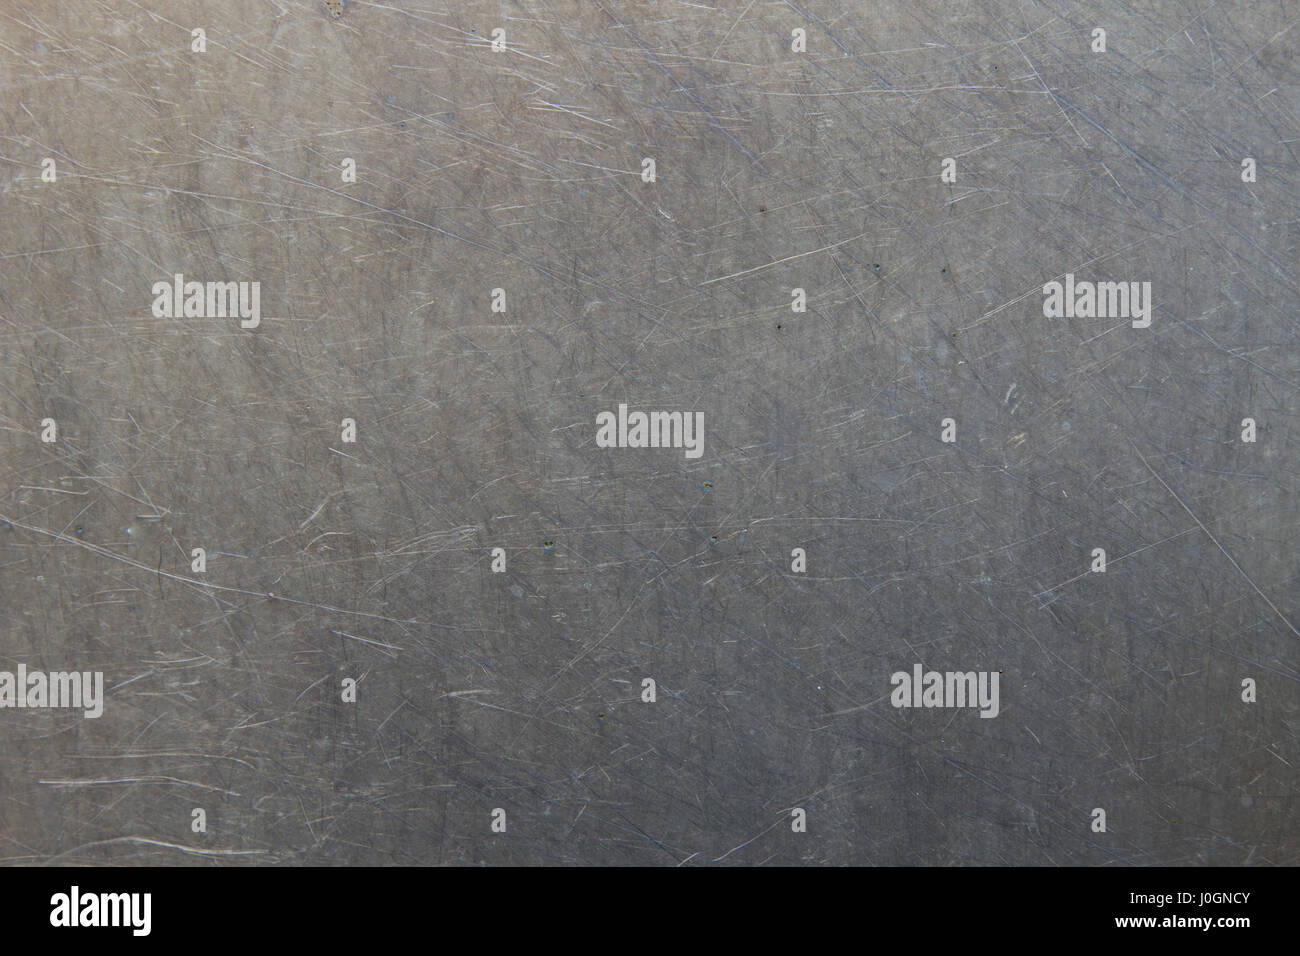 Scratched metal background - Stock Image